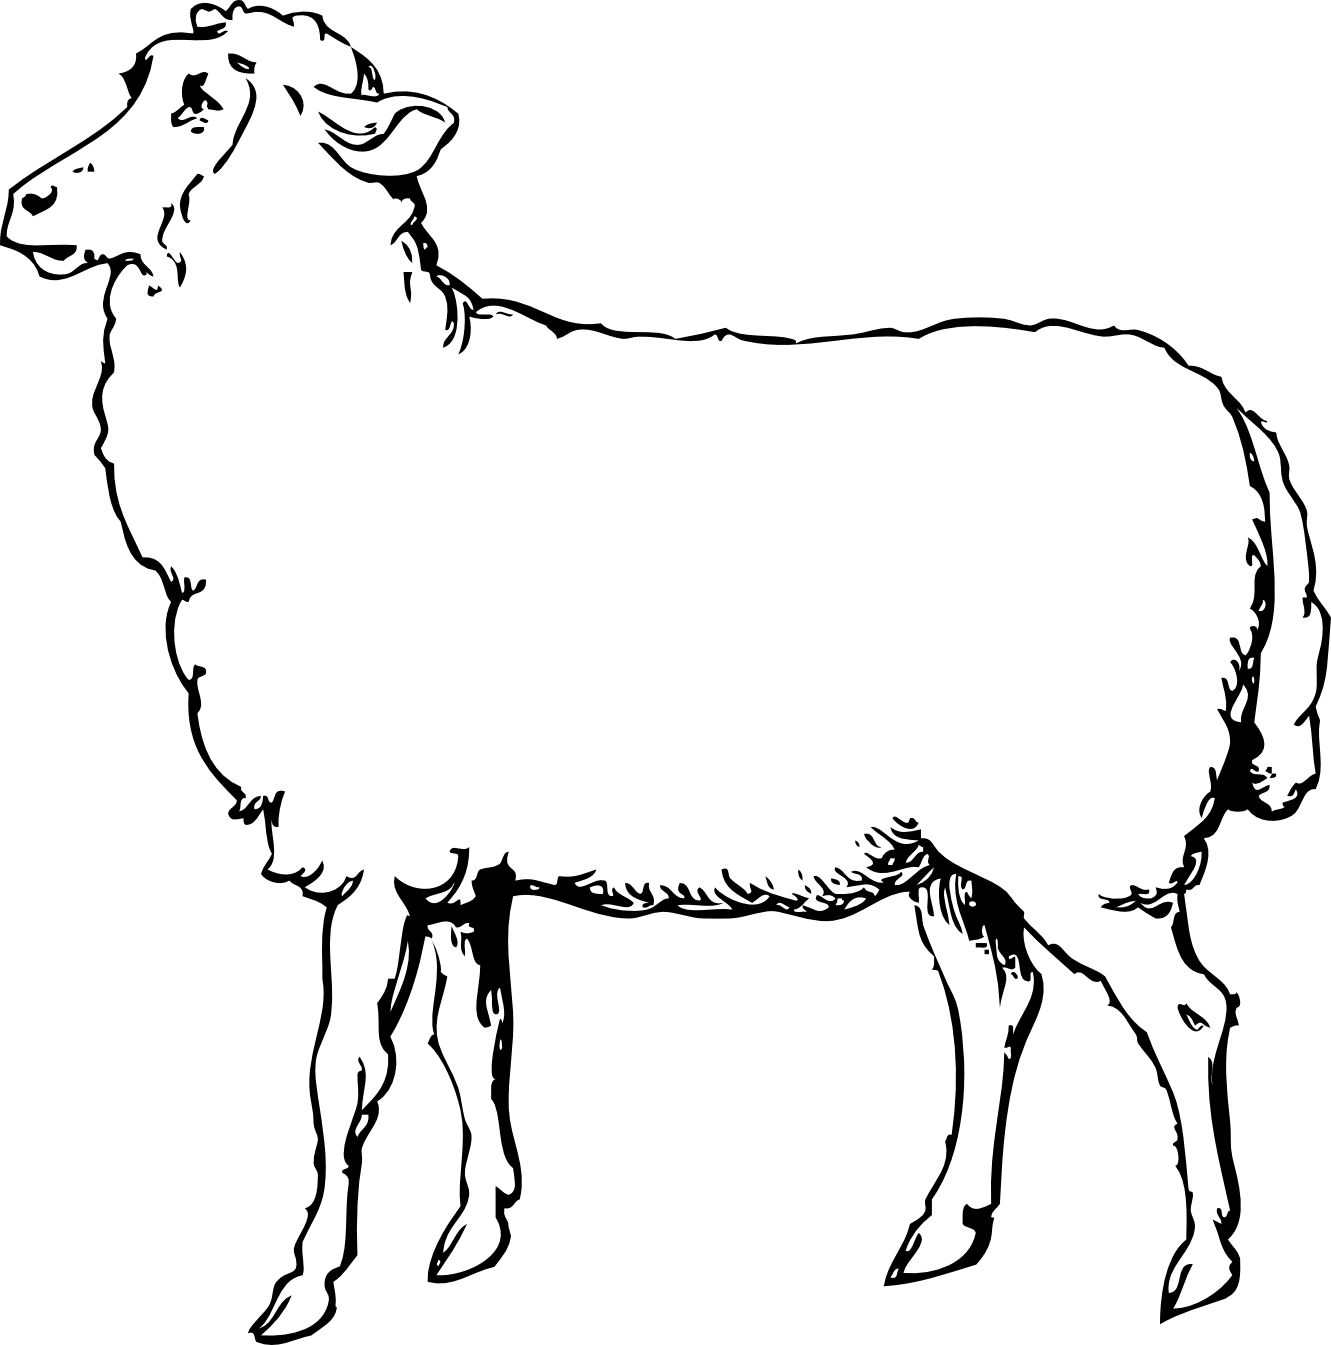 lamb clipart black and white sheep 1 black white line art coloring